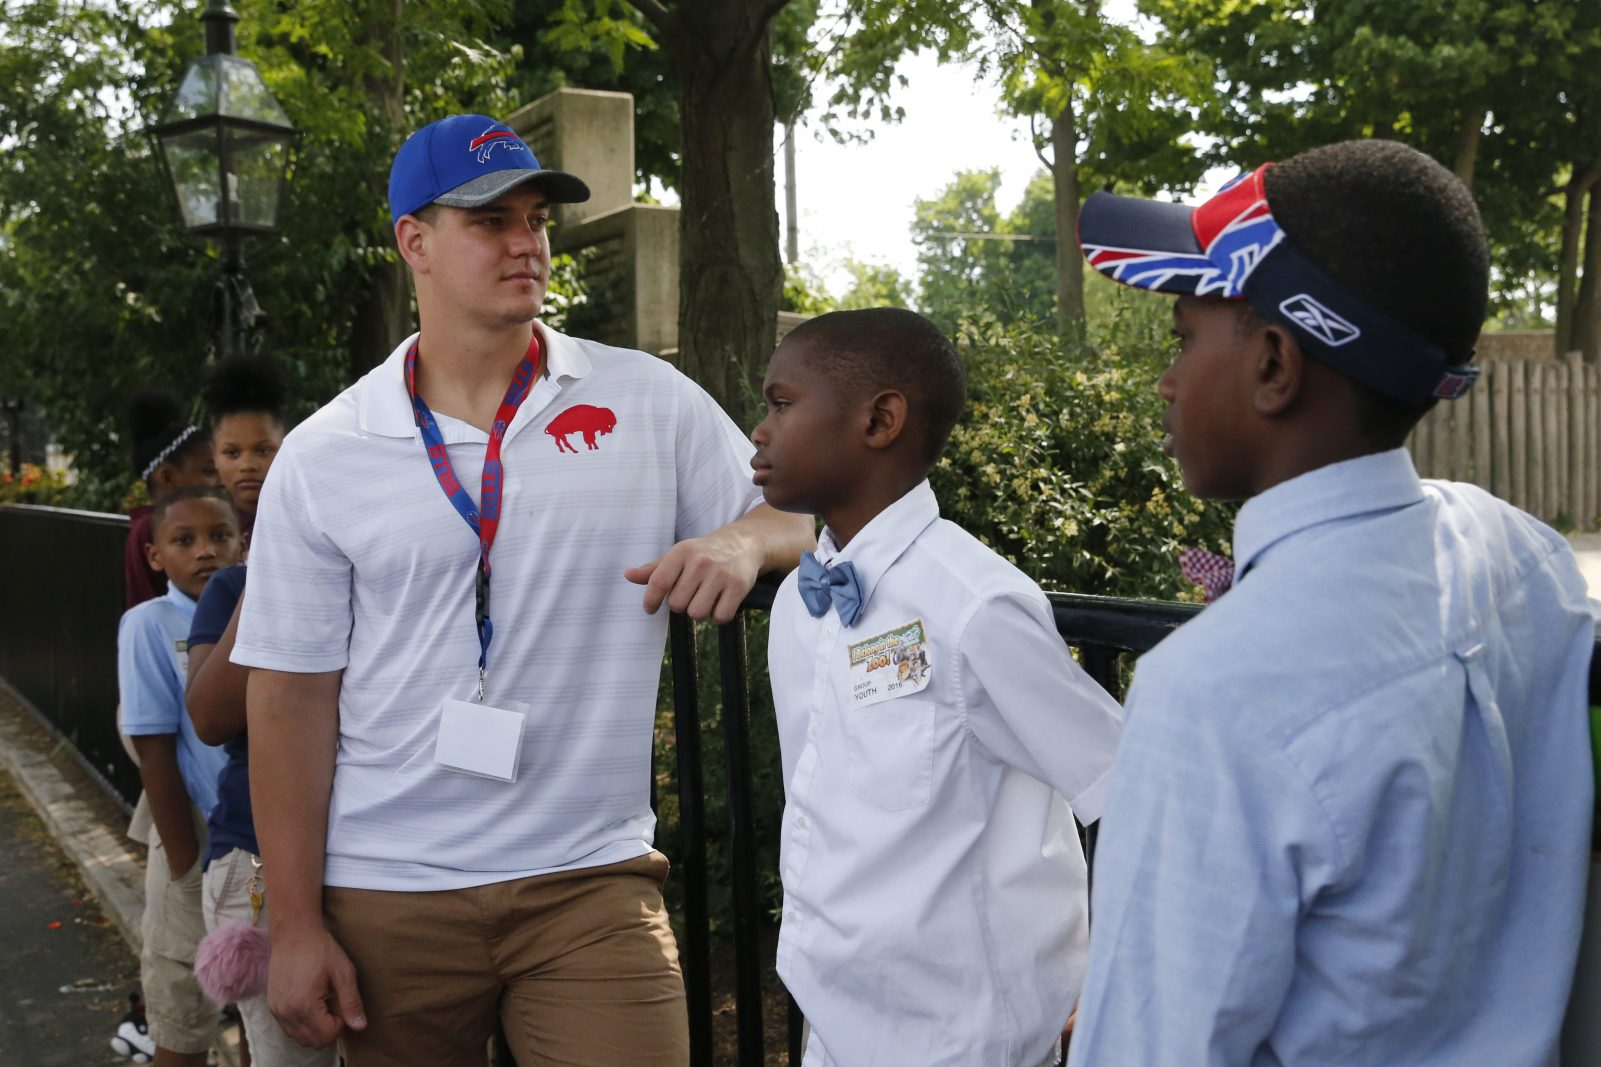 Buffalo Bills rookie fullback Glenn Gronkowski and Westminster Community Charter School fifth graders Chase Welch, center, and James Glover, right, check, out the Asian elephants during a visit to The Buffalo Zoo as part of the NFL's Rookie Transition Program on Monday.  (Derek Gee/Buffalo News)